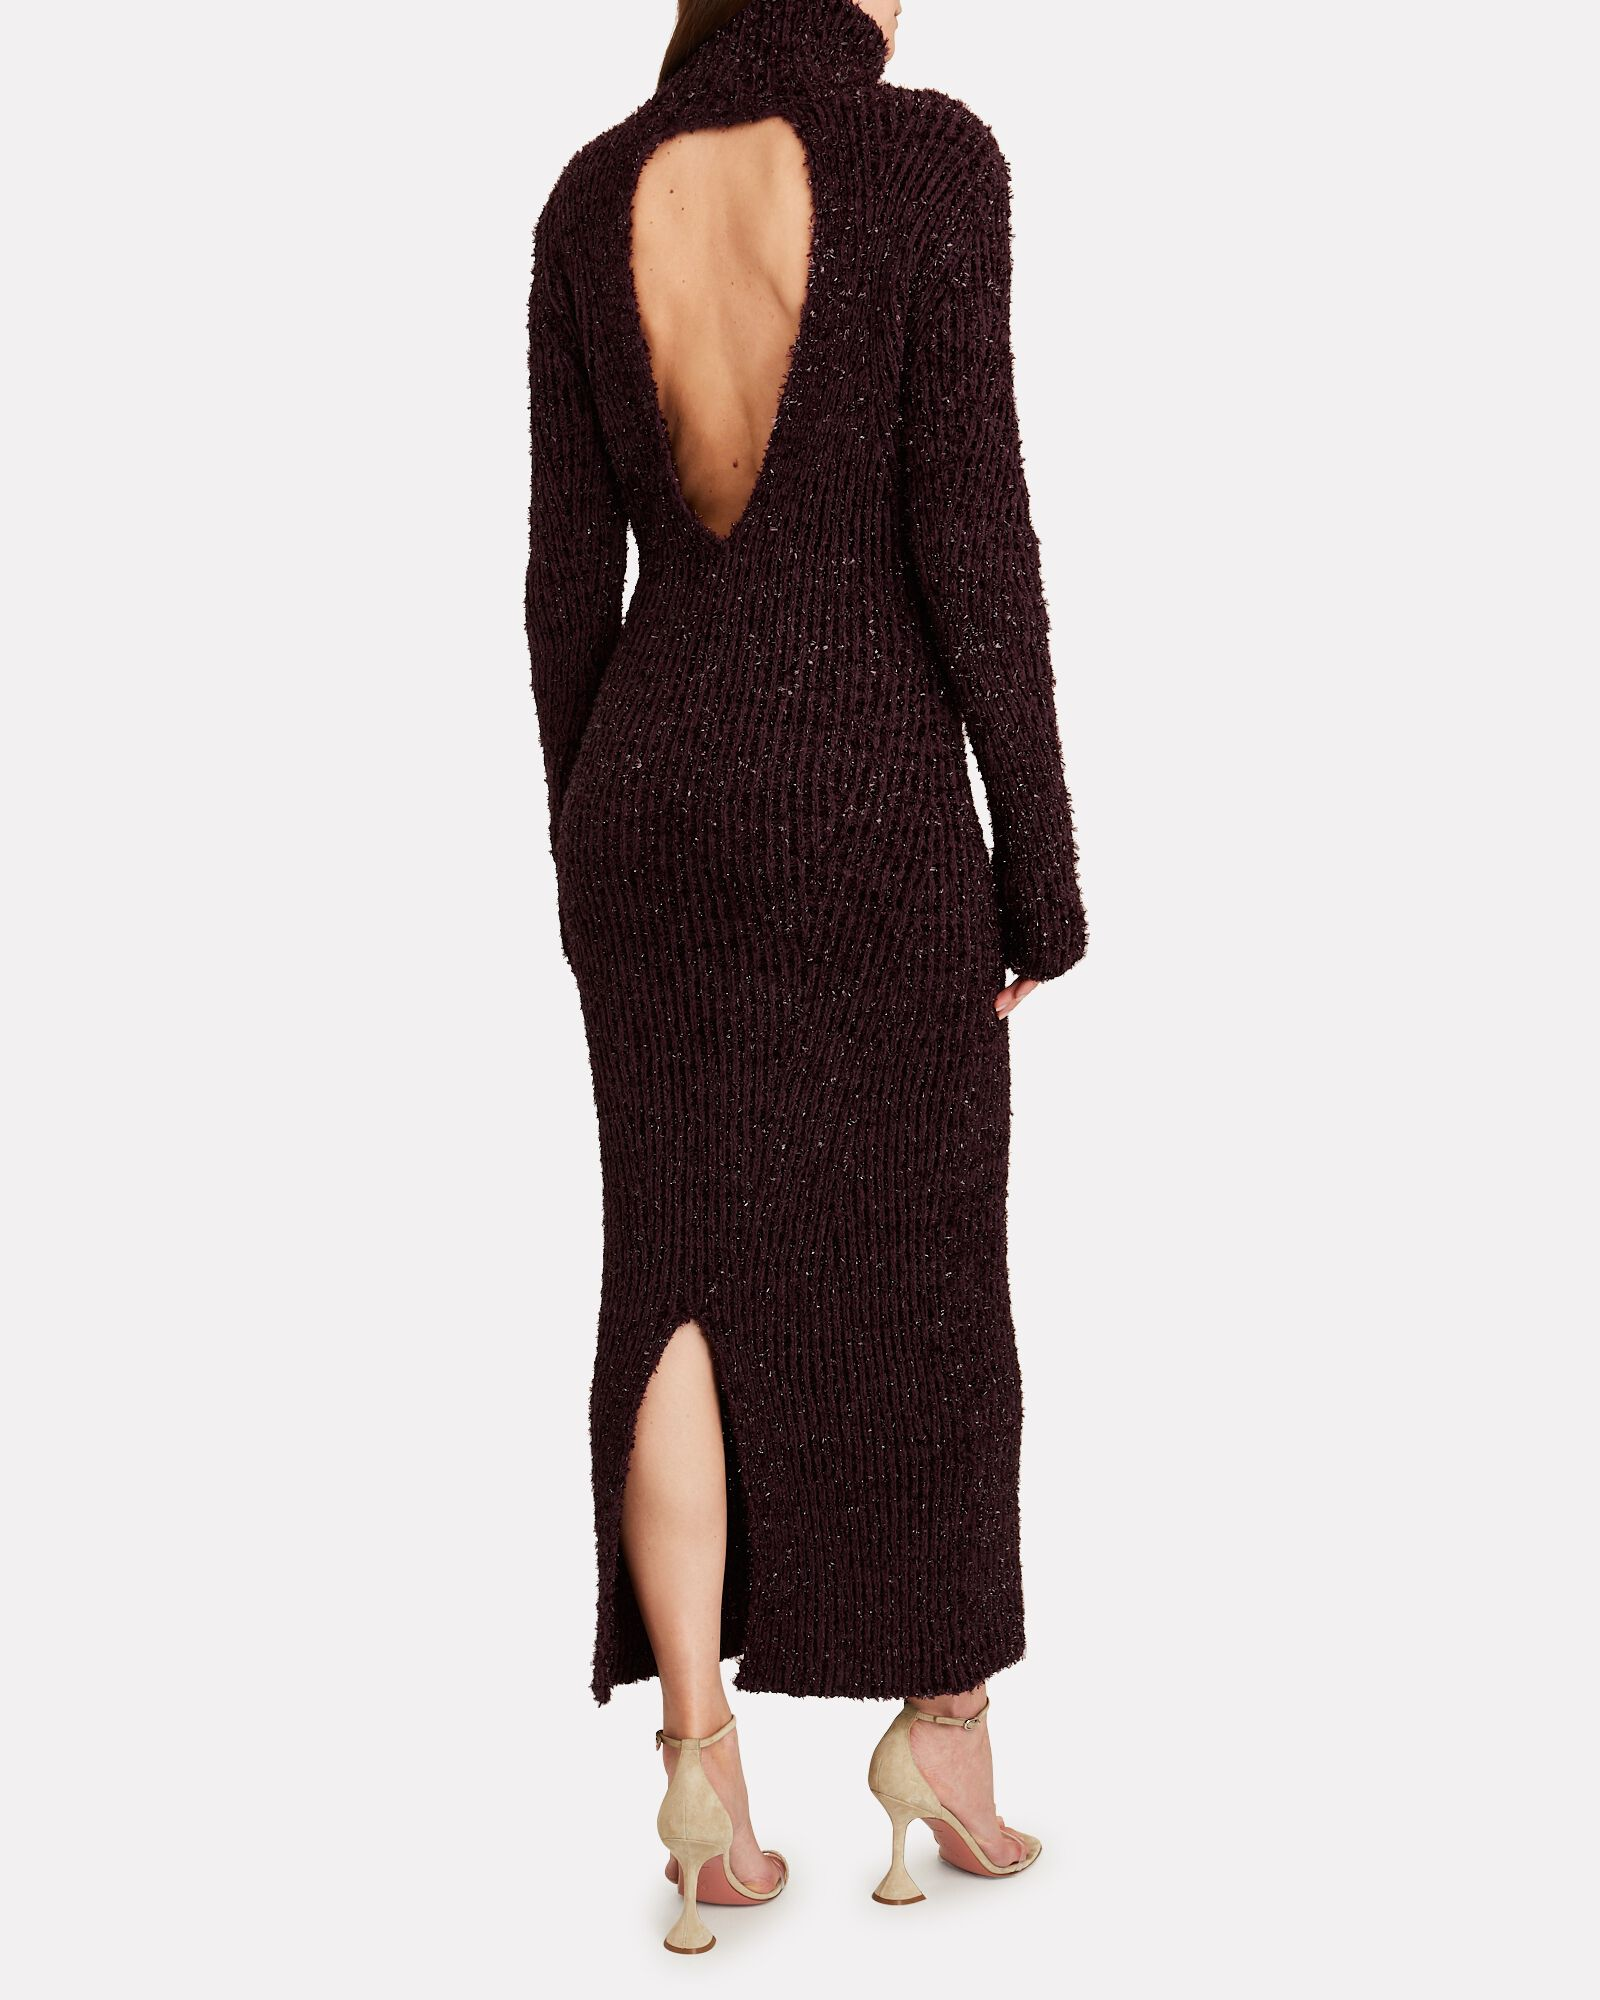 Open Back Turtleneck Knit Dress, RED-DRK, hi-res